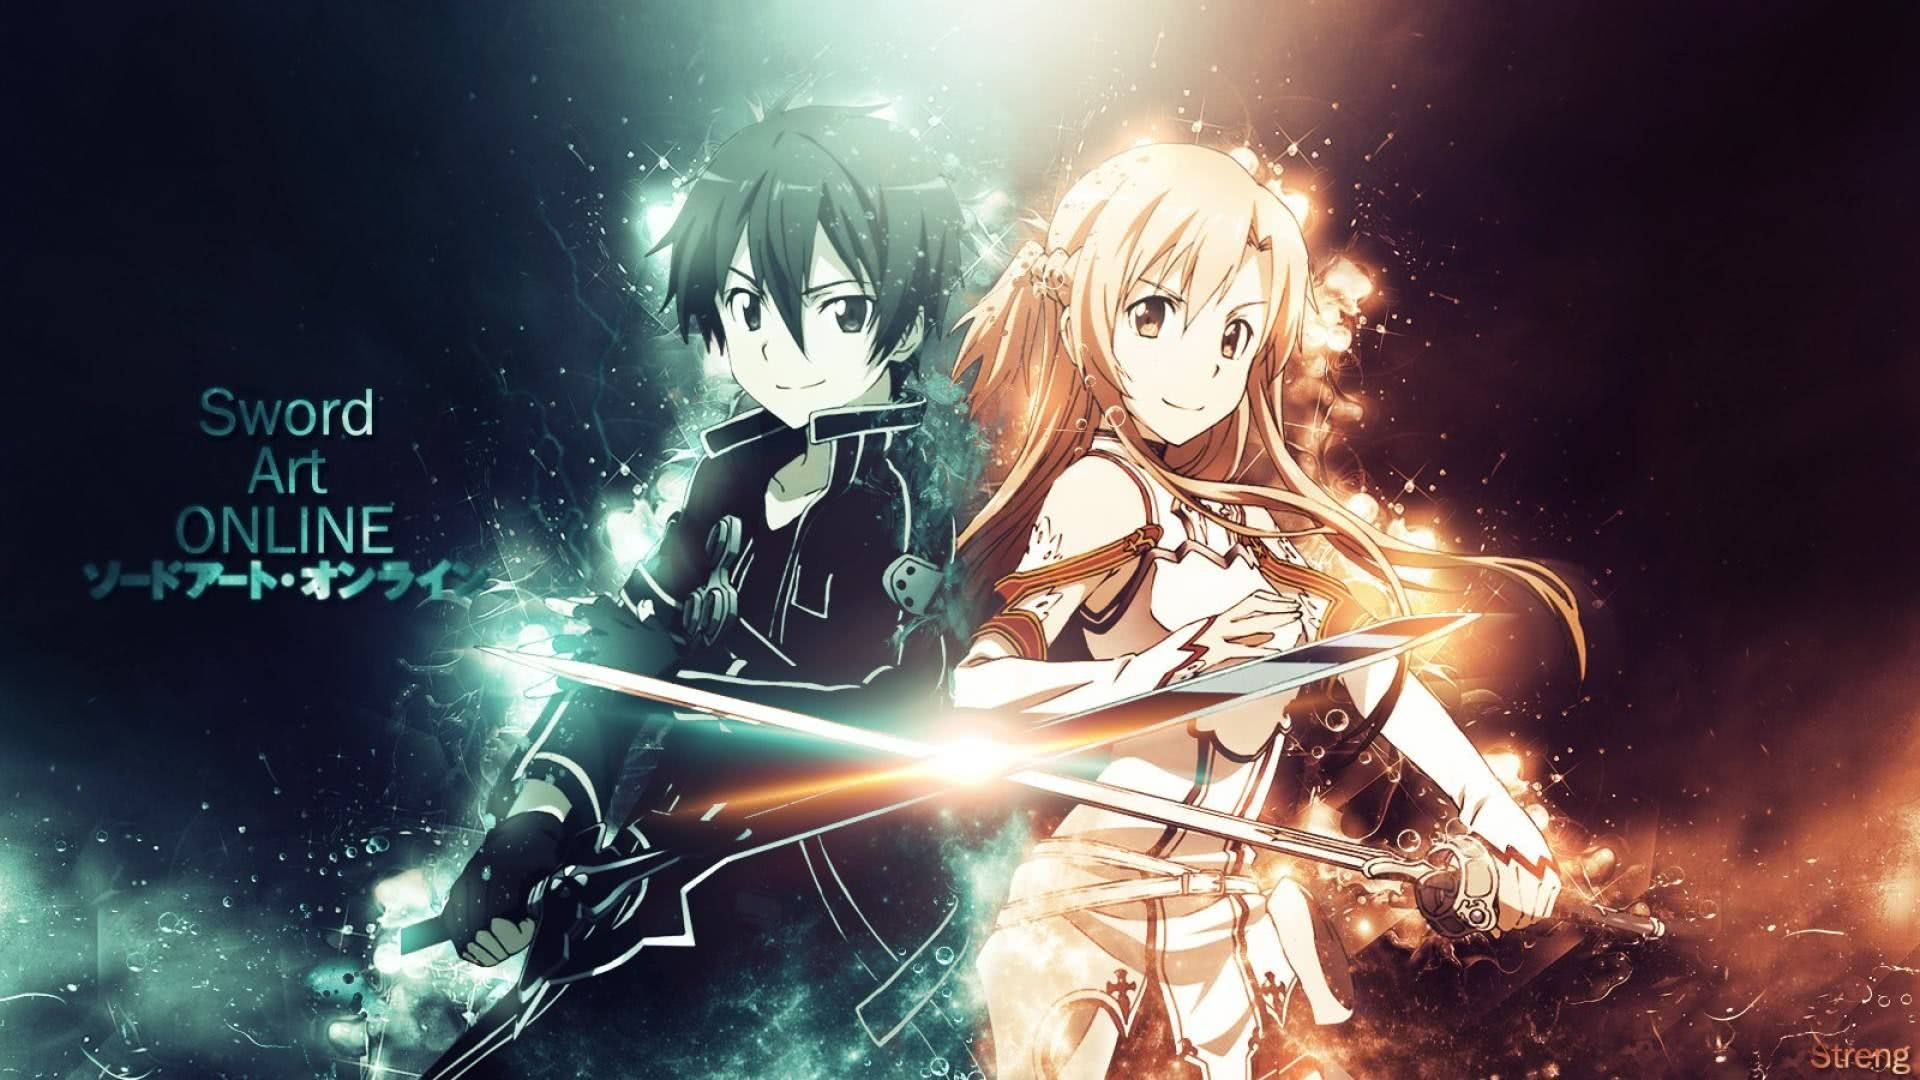 Sao Wallpapers For Your Desktop